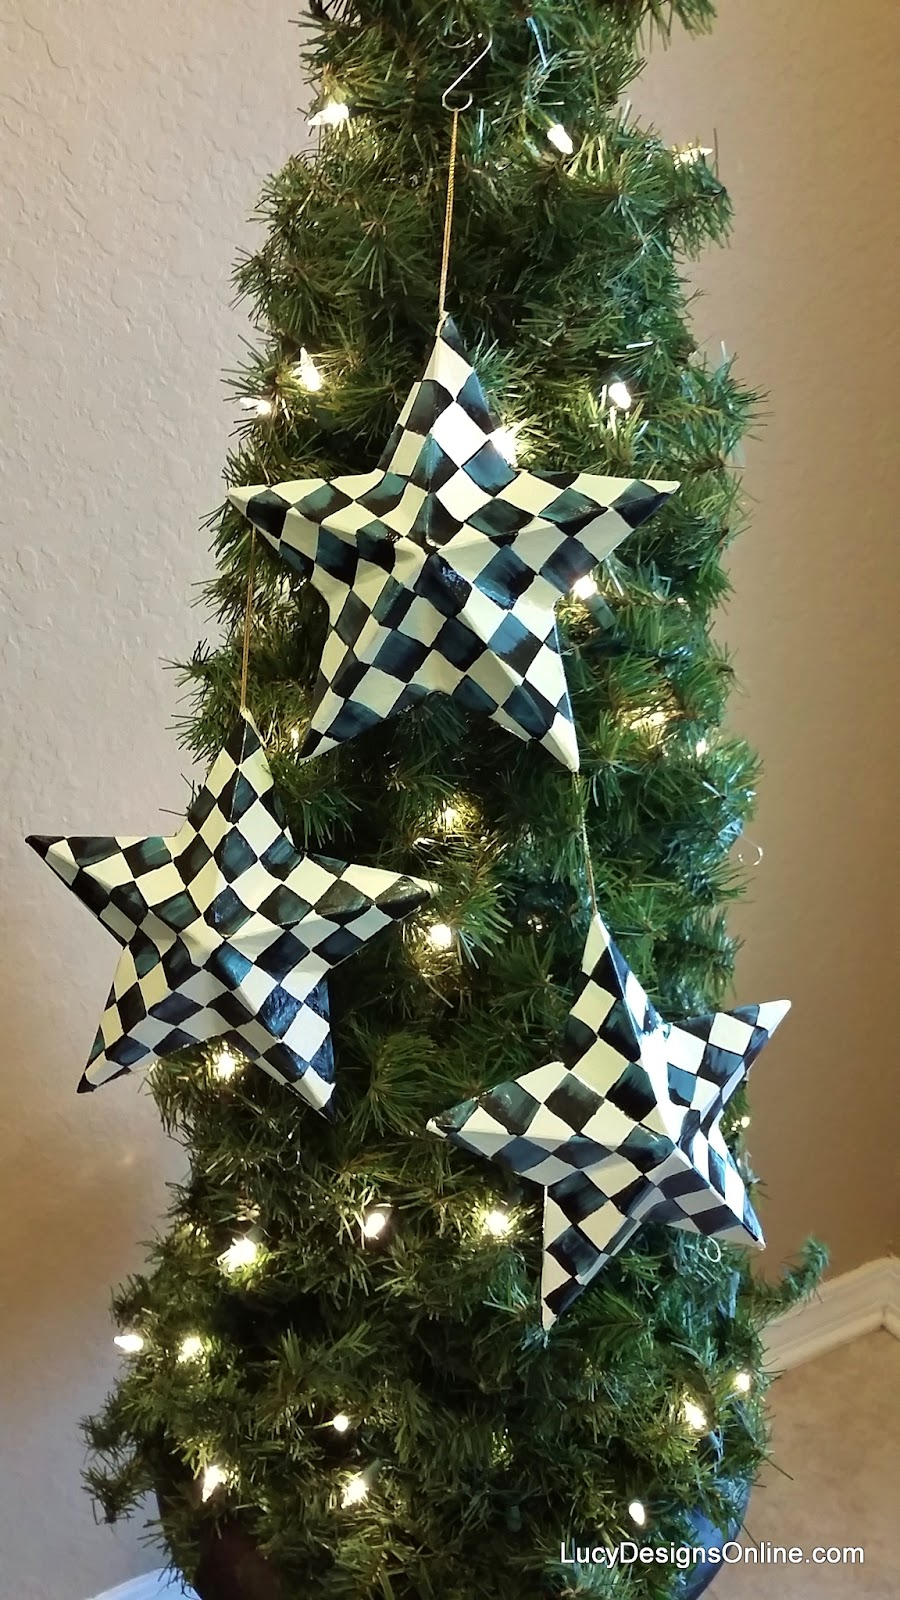 hand painted black and white check ornaments star shape on tomato cage topiary